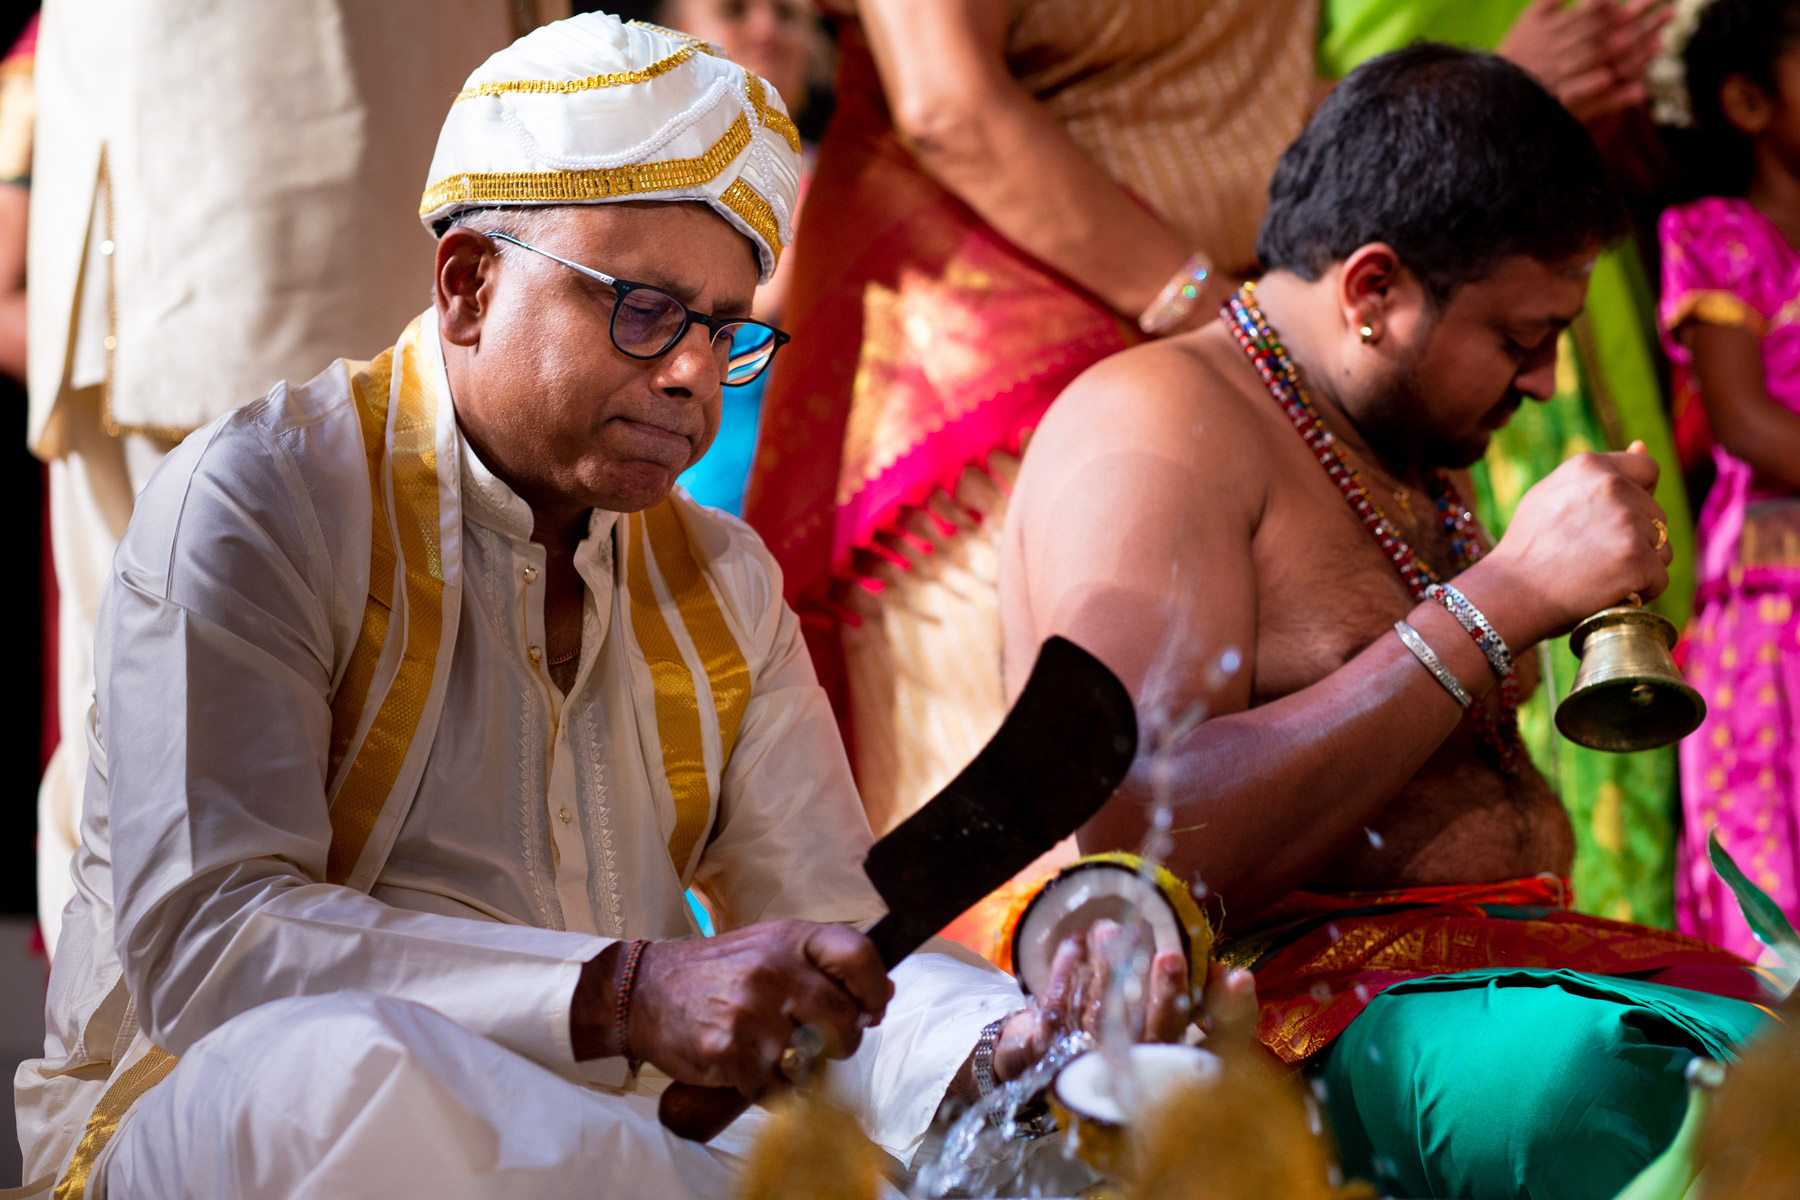 Colourful and fun wedding ceremony